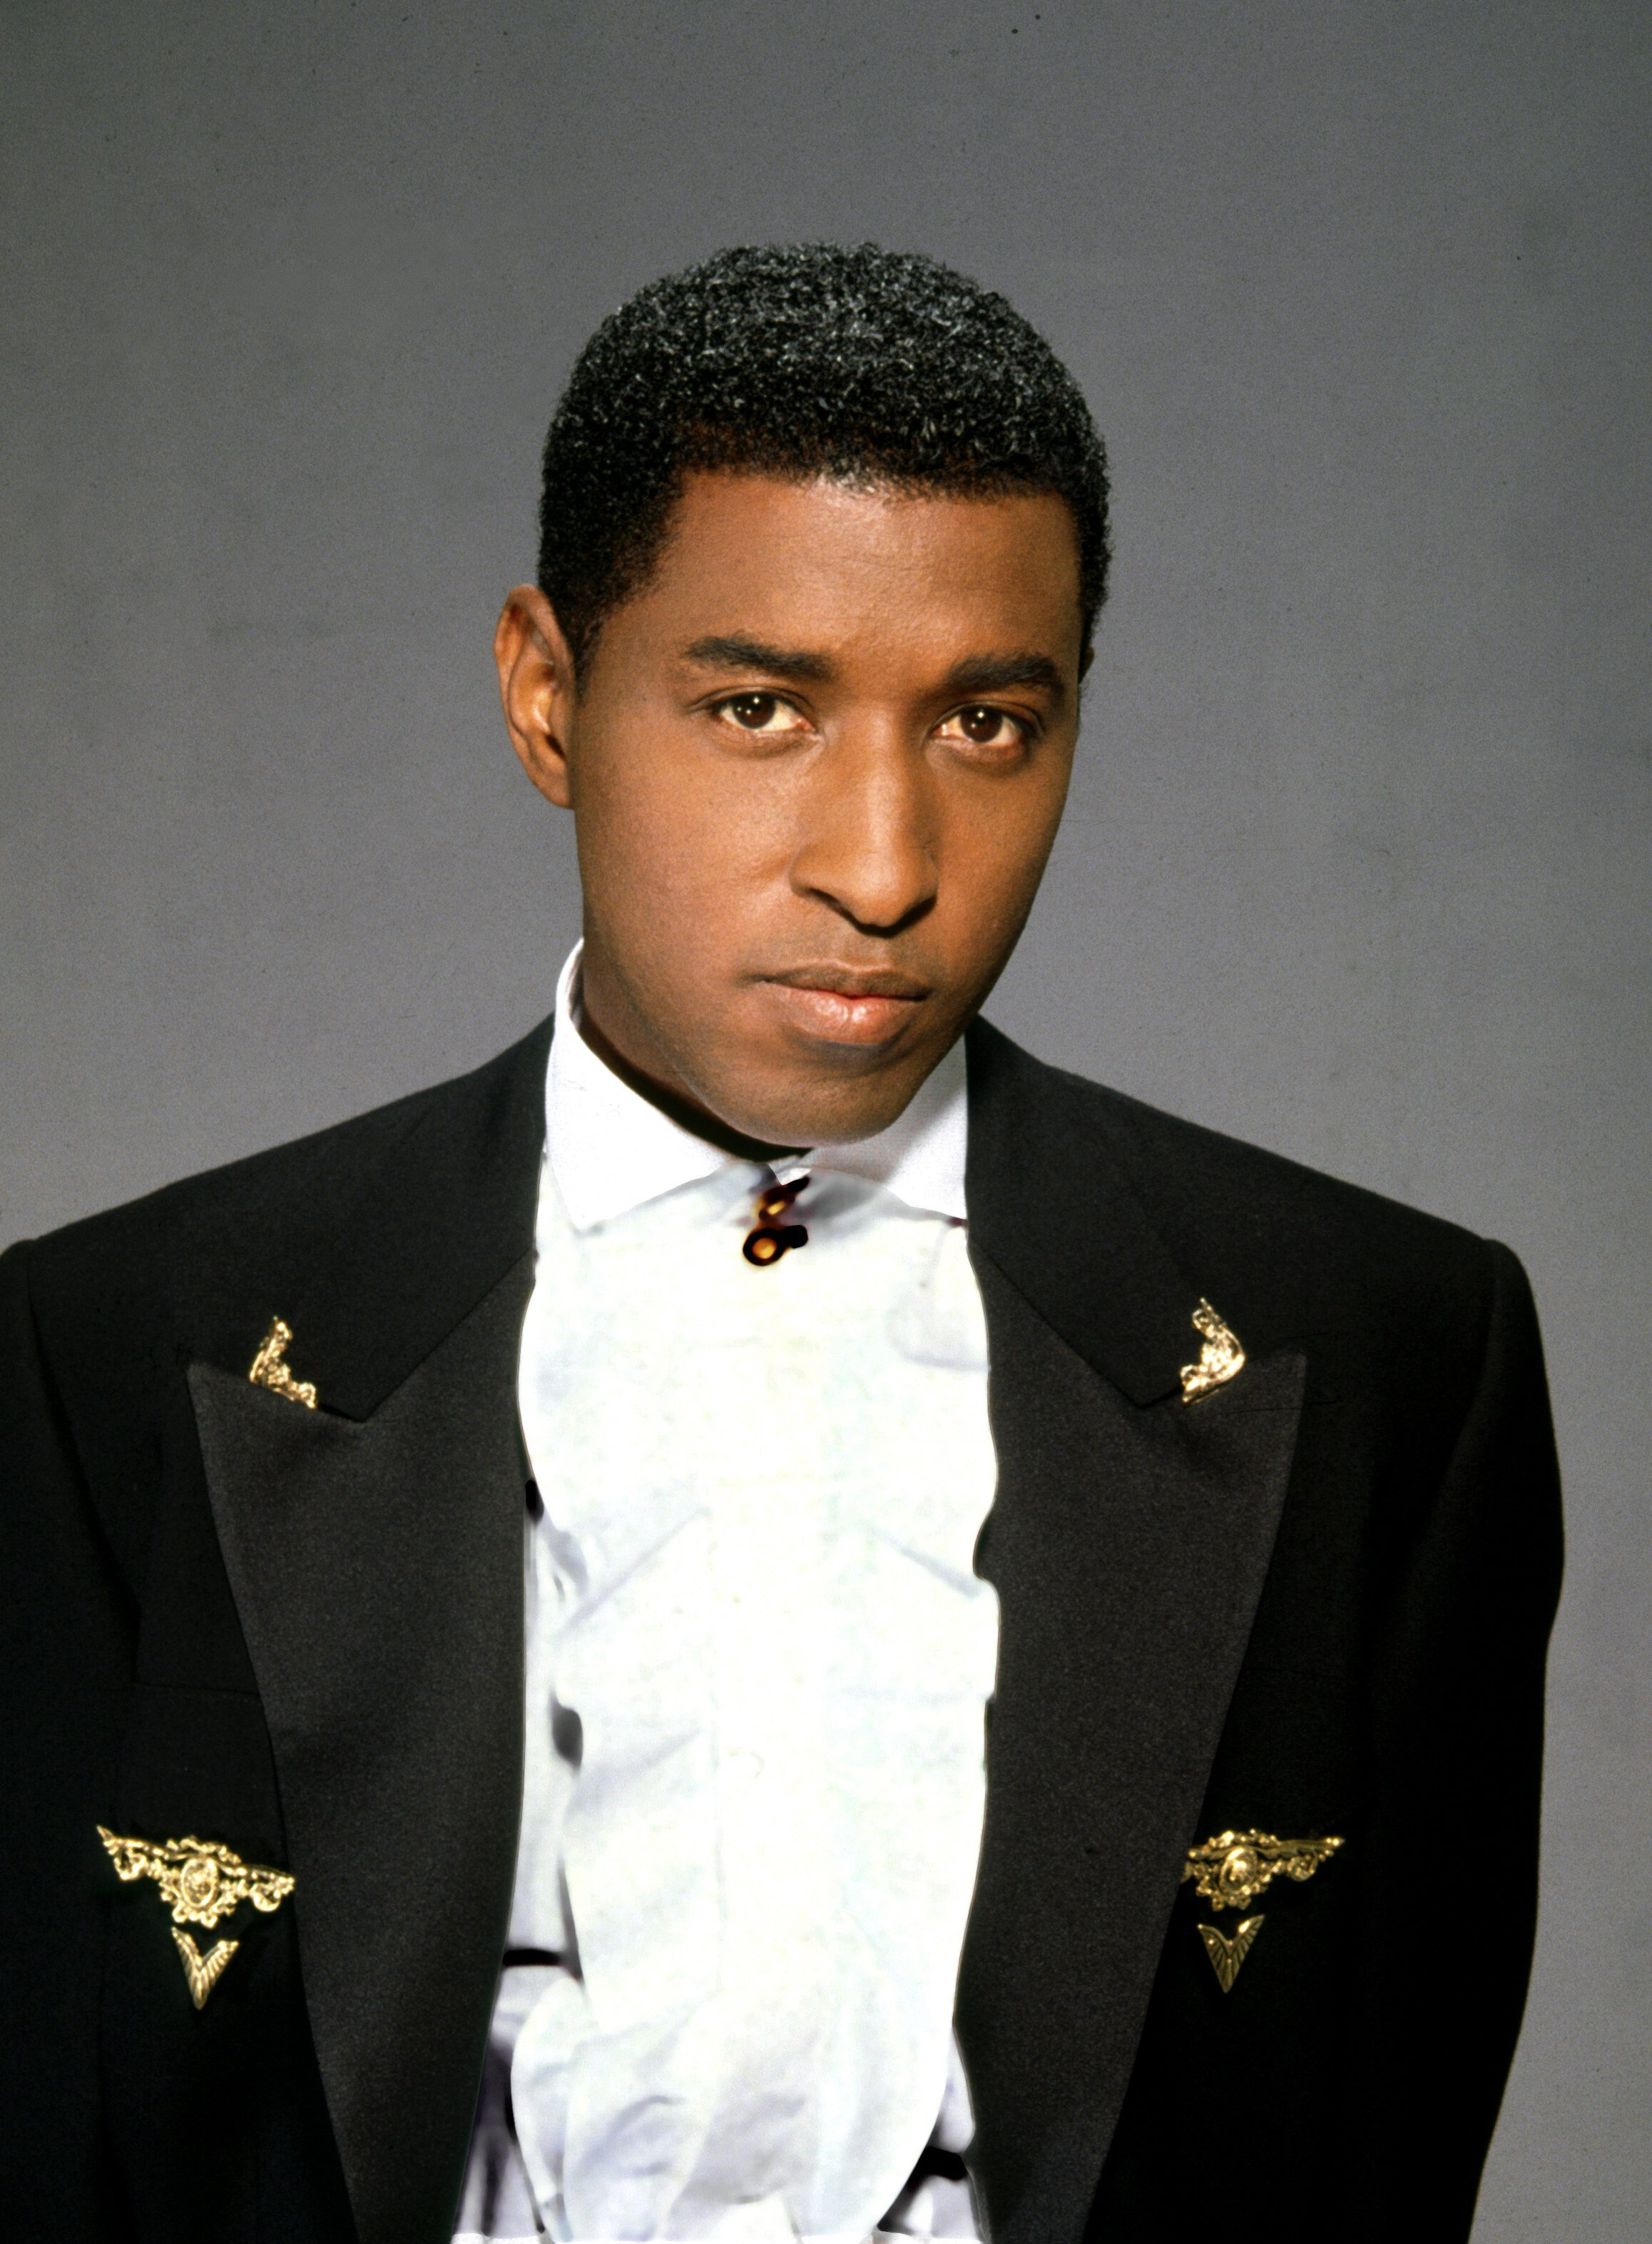 Babyface during a portrait session in 1992. | Photo: Getty Images